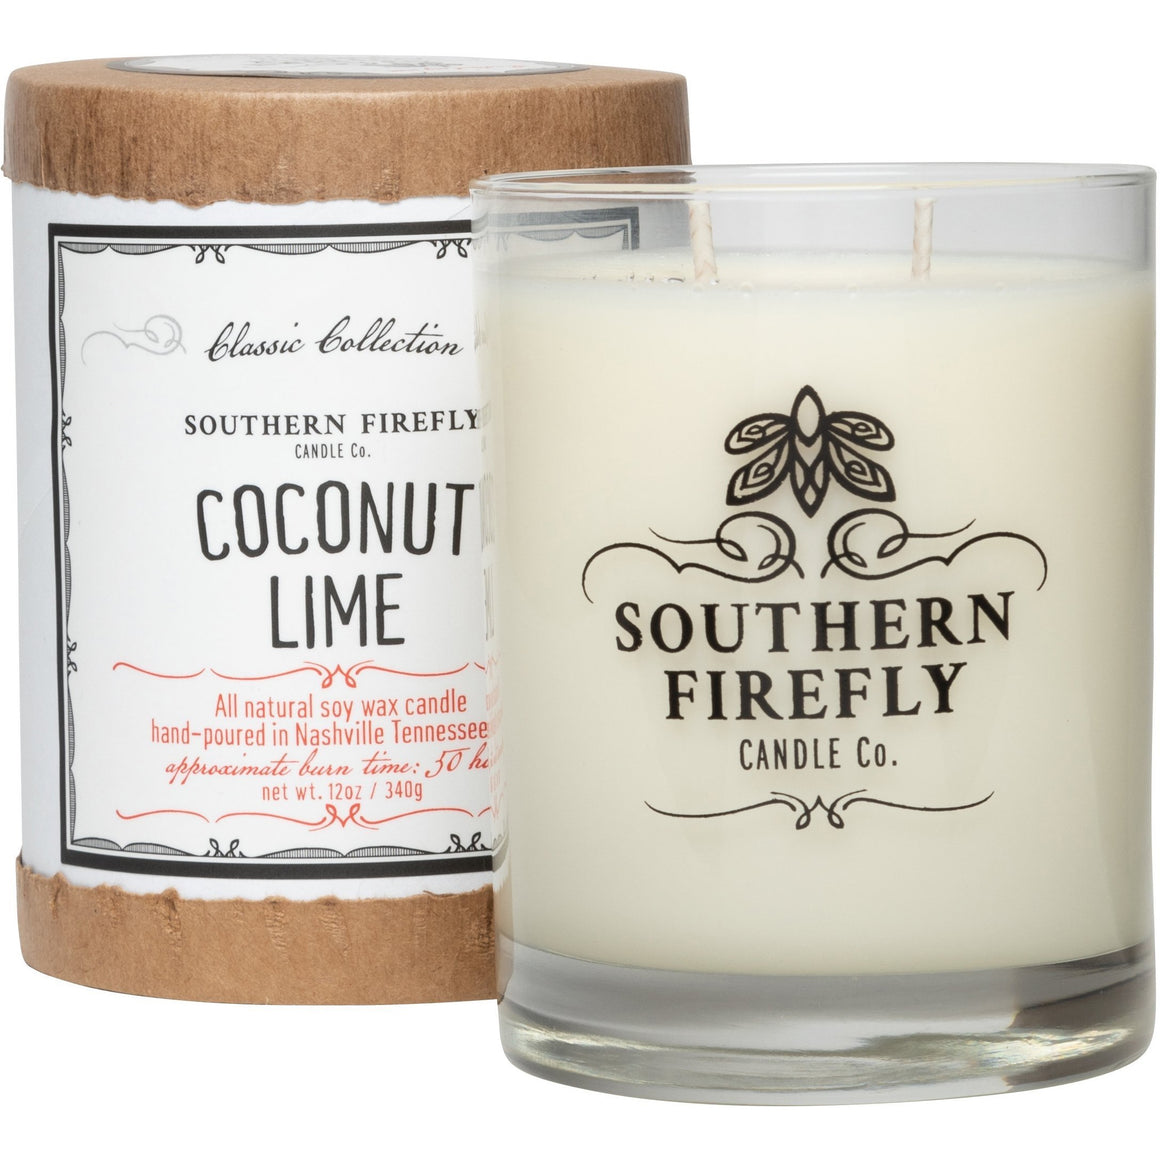 Southern Firefly Candle Co. COCONUT LIME - 14 oz GLASS CONTAINER